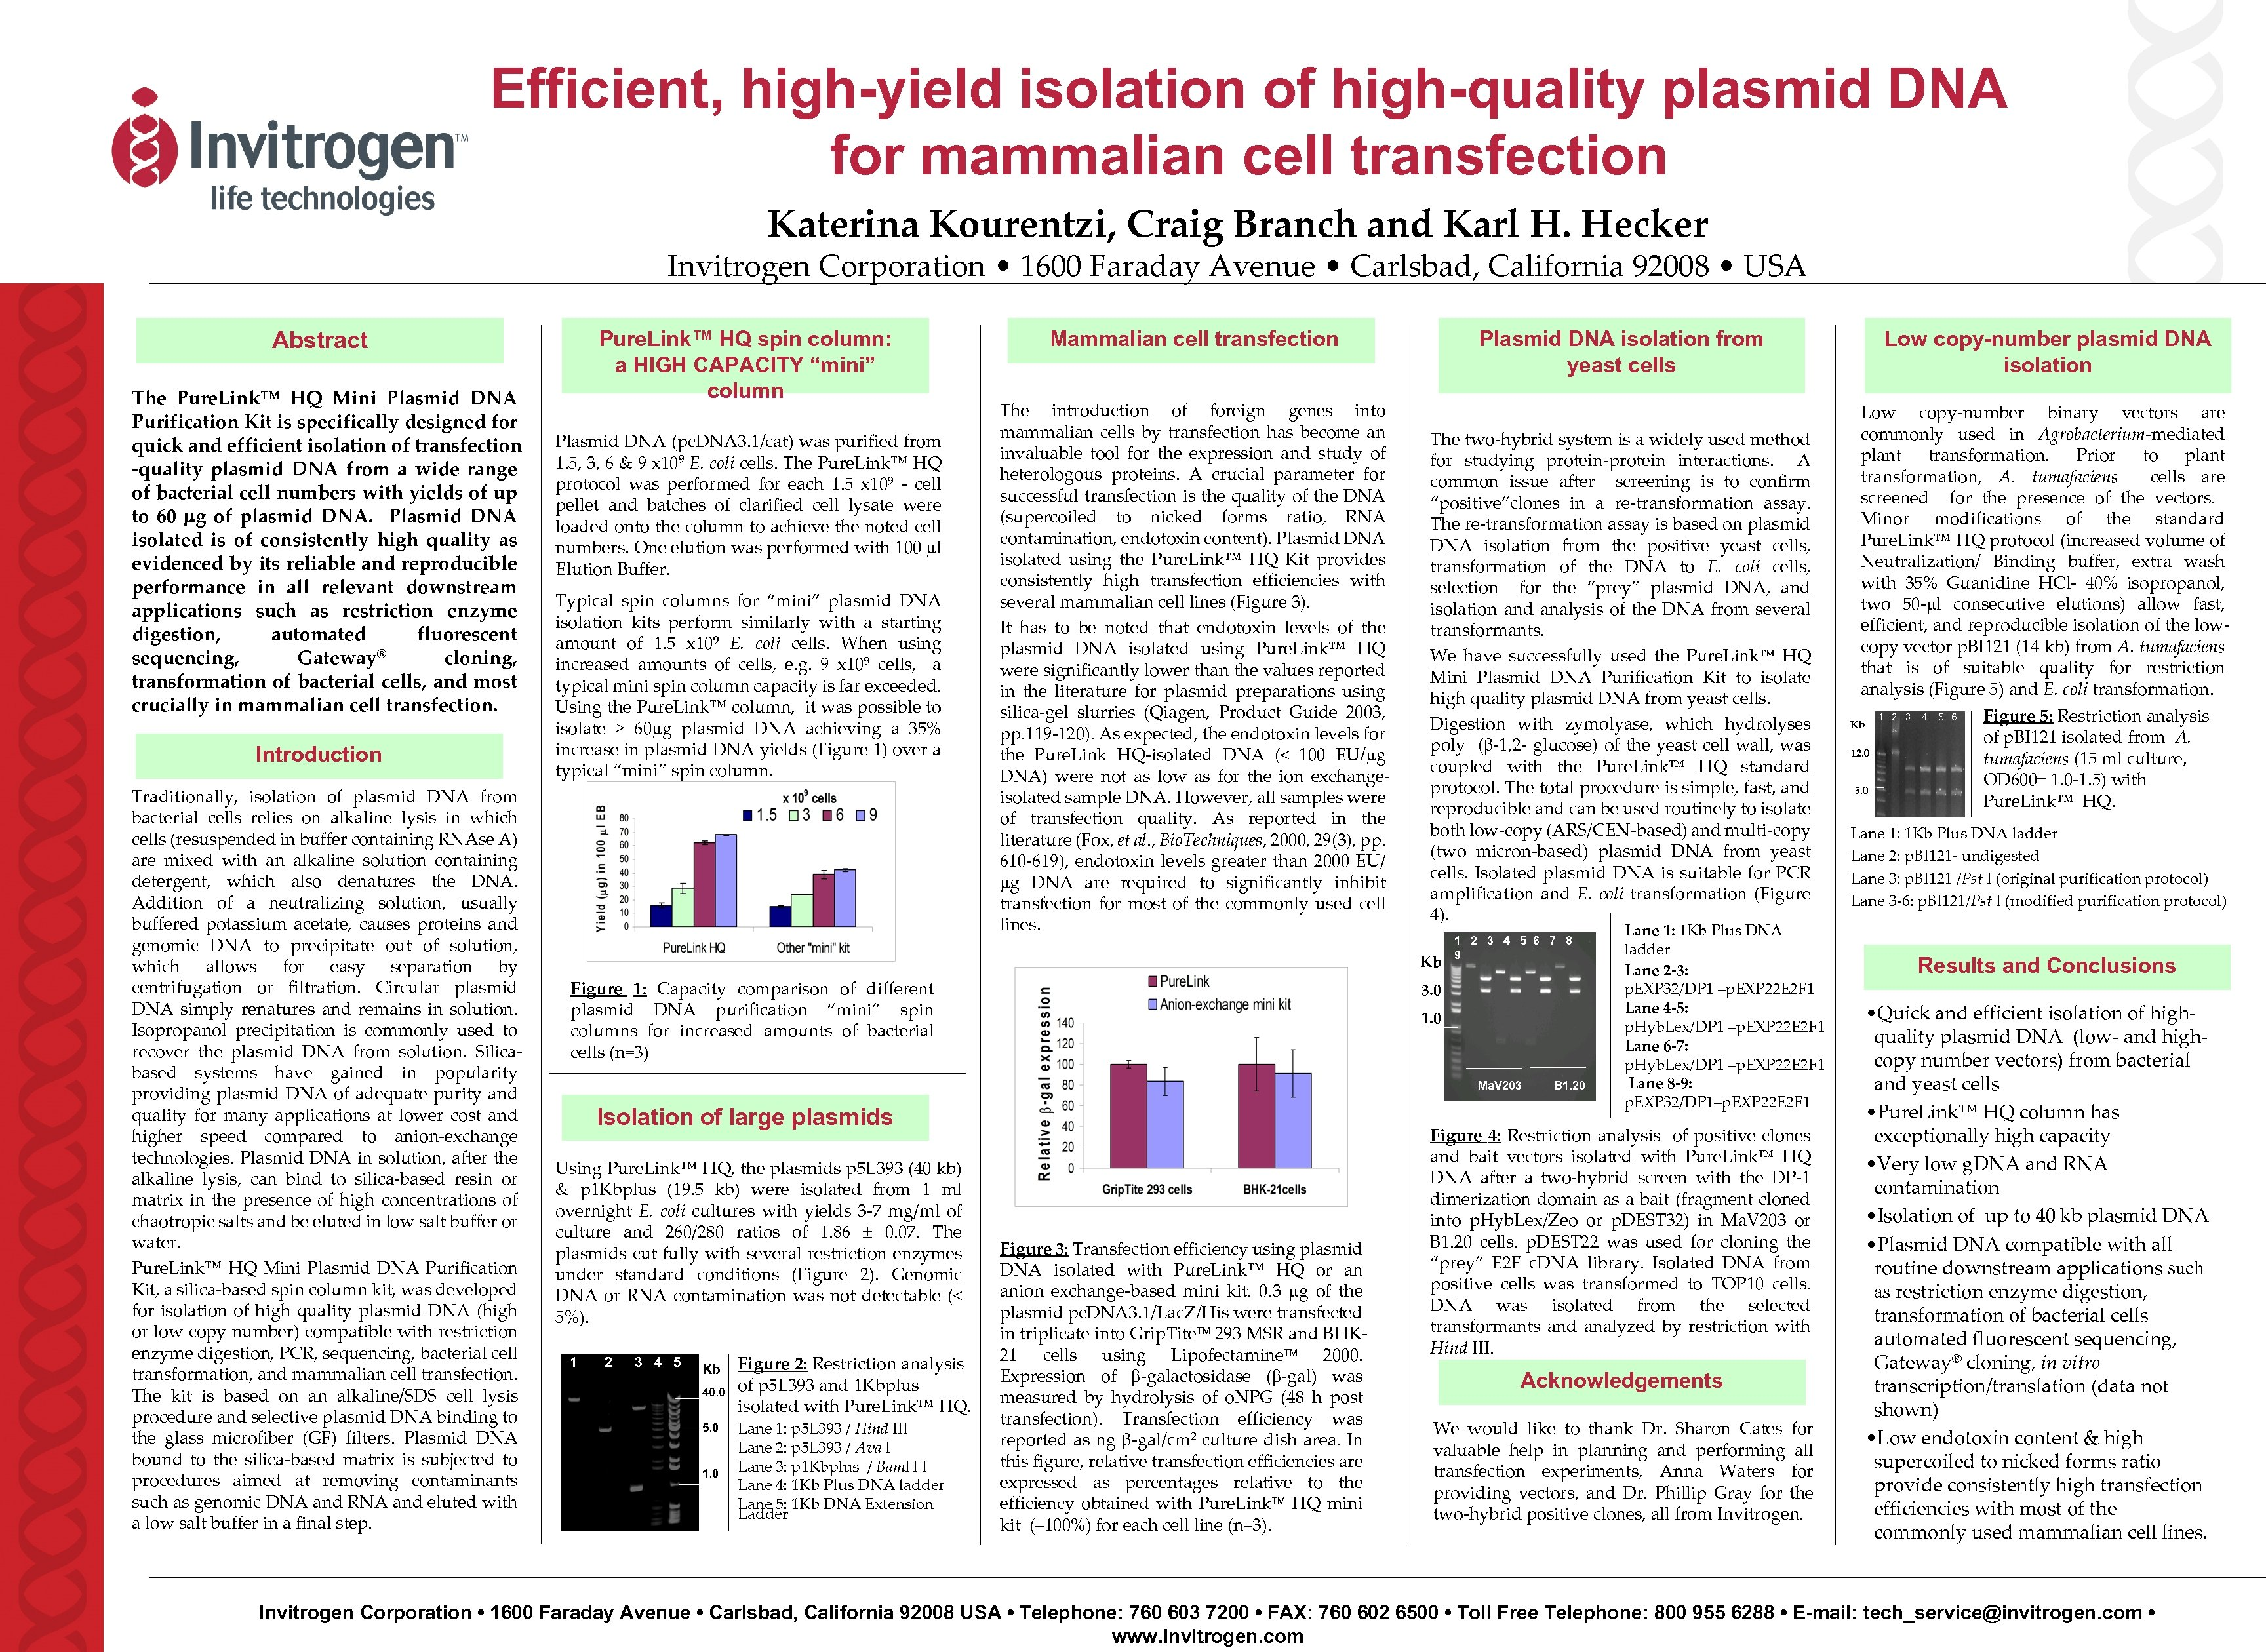 Efficient, high-yield isolation of high-quality plasmid DNA for mammalian cell transfection Katerina Kourentzi, Craig